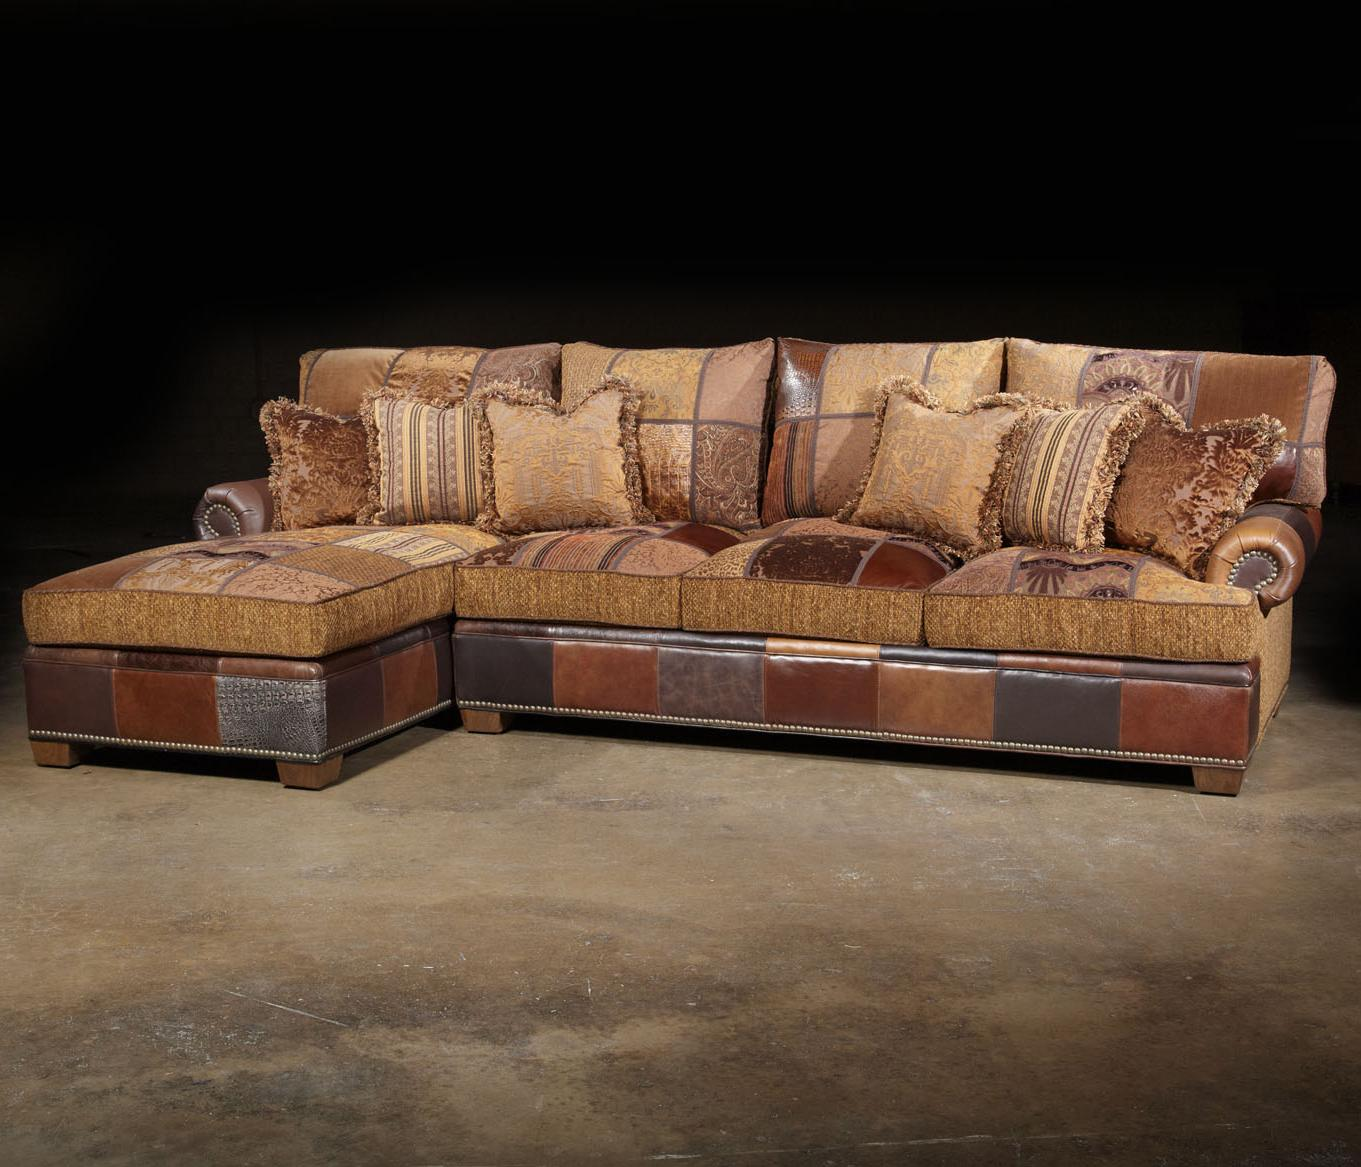 Beautiful Choices Patched Western Sectional Sofa In Traditional Furniture Style By Paul  Robert